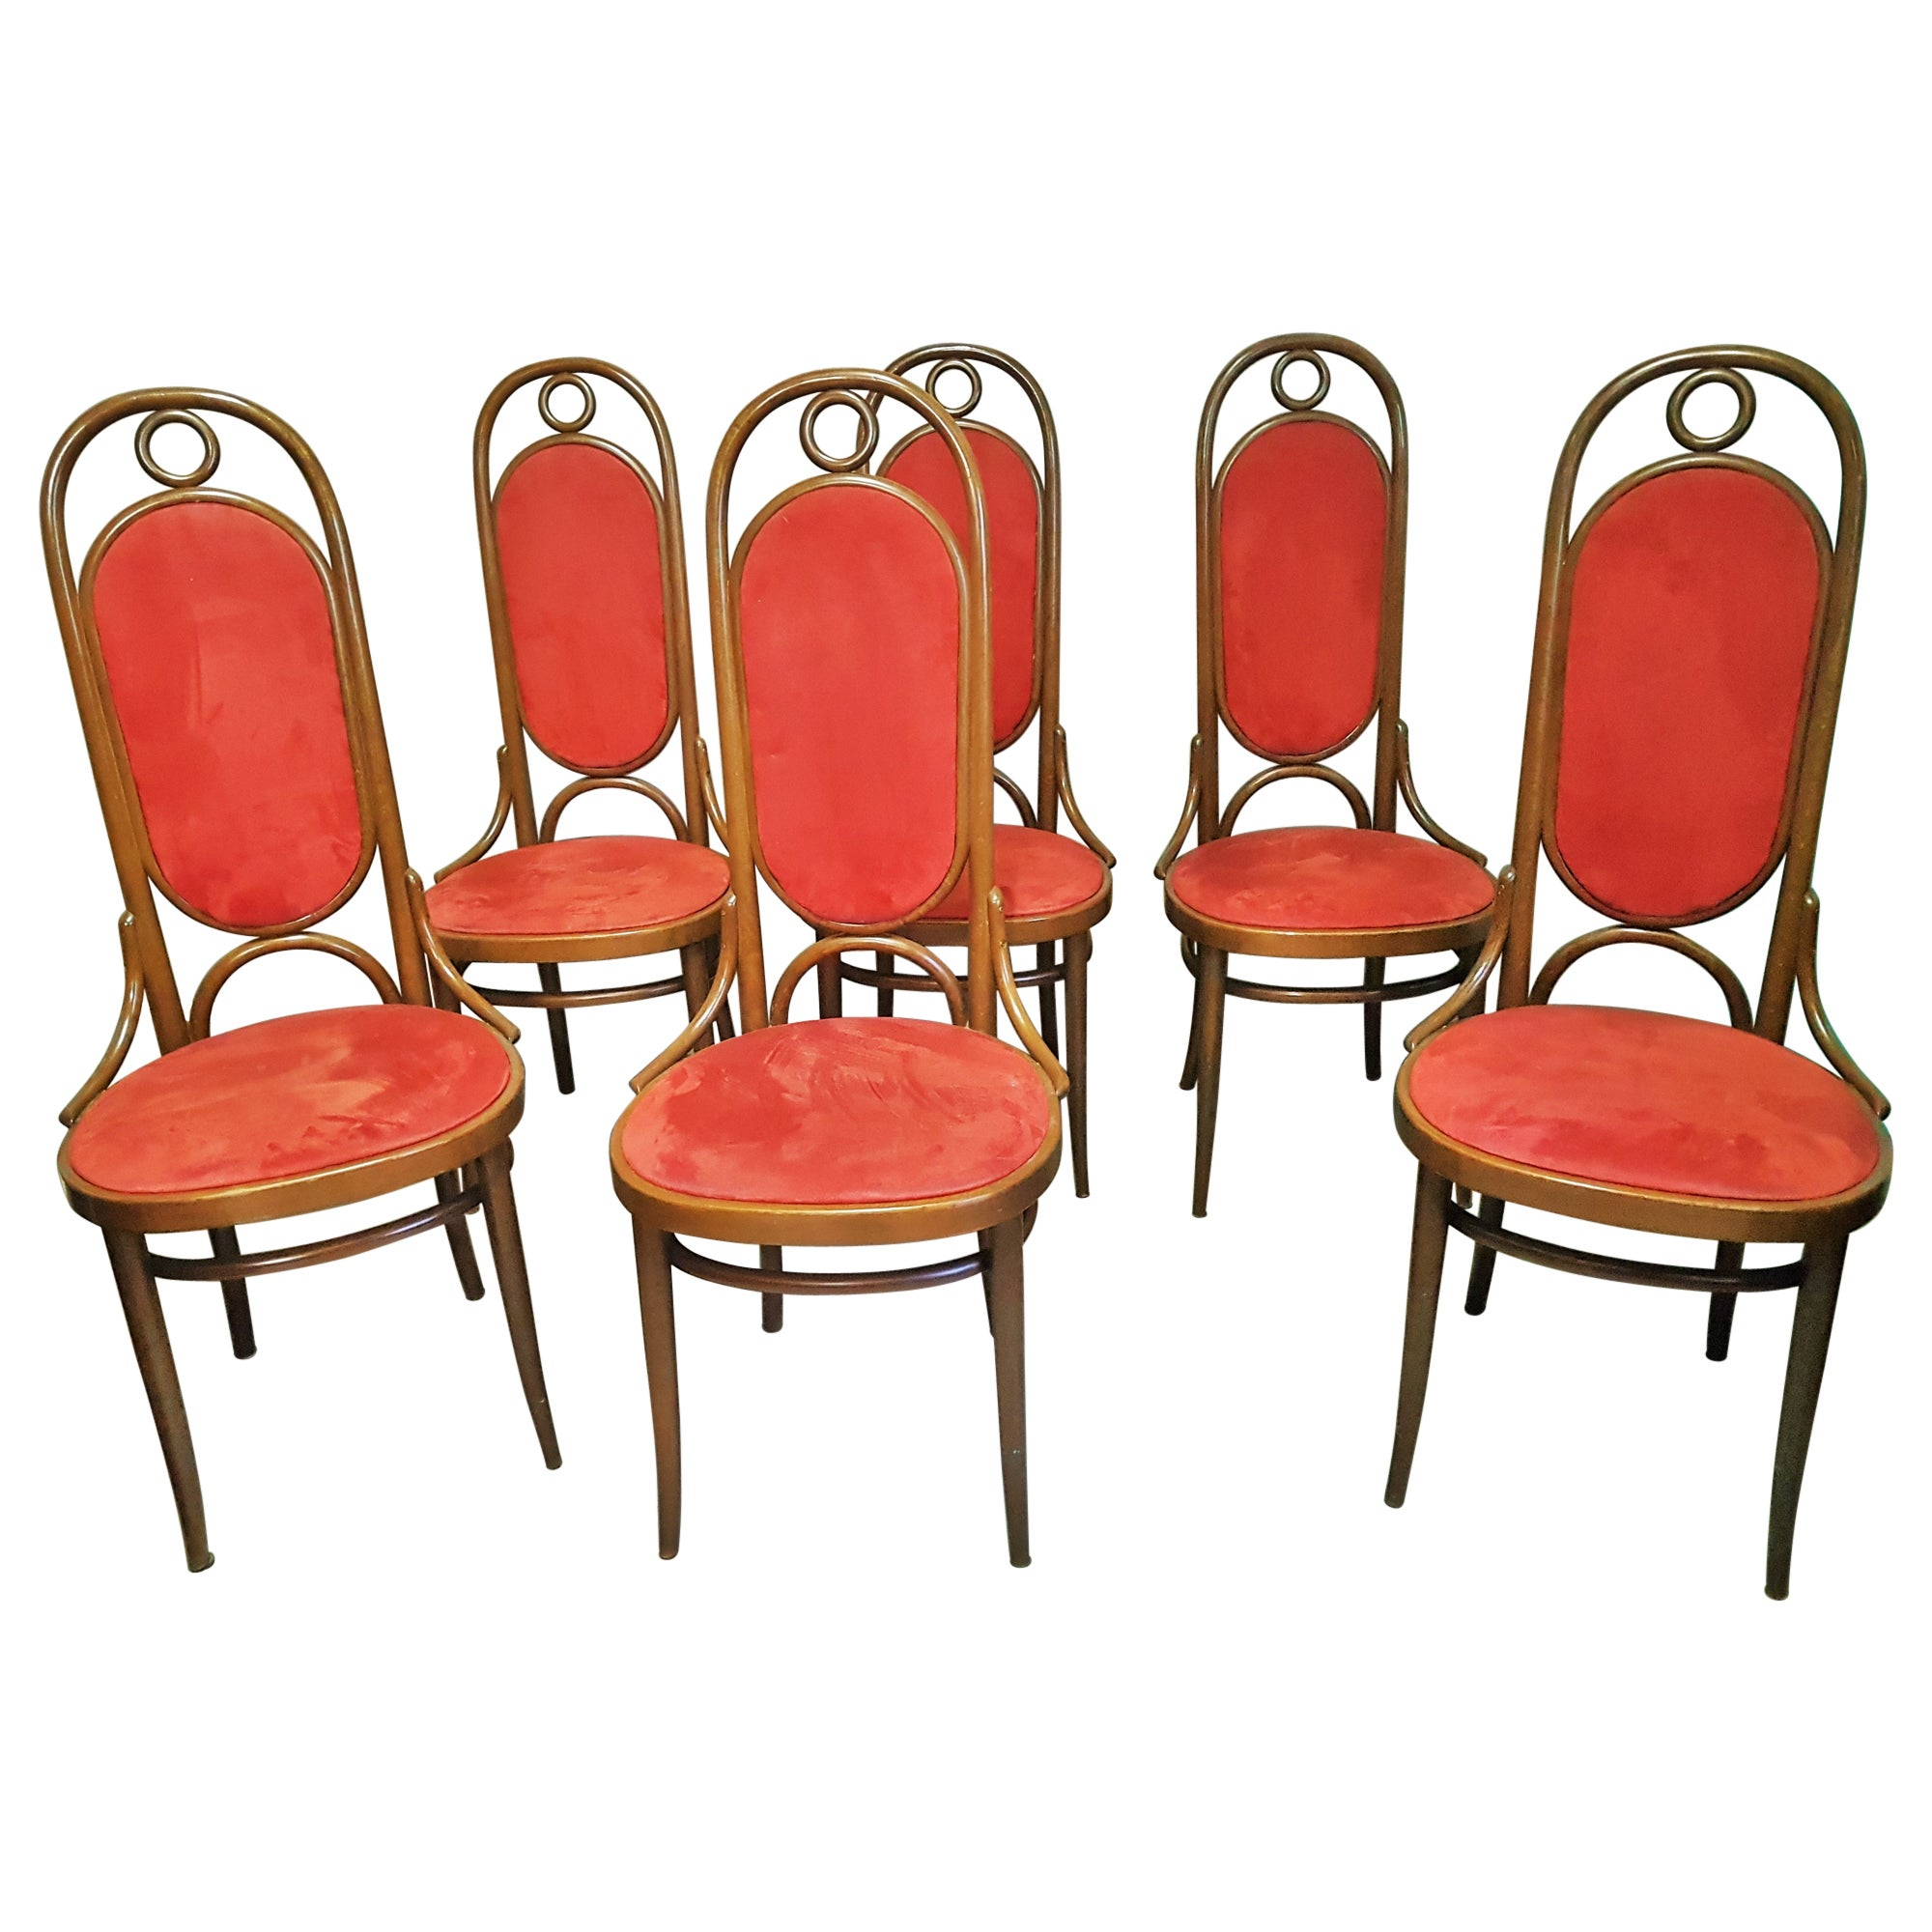 Set of 6 Bentwood Higgh Back Dining Chairs by Thonet, Germany